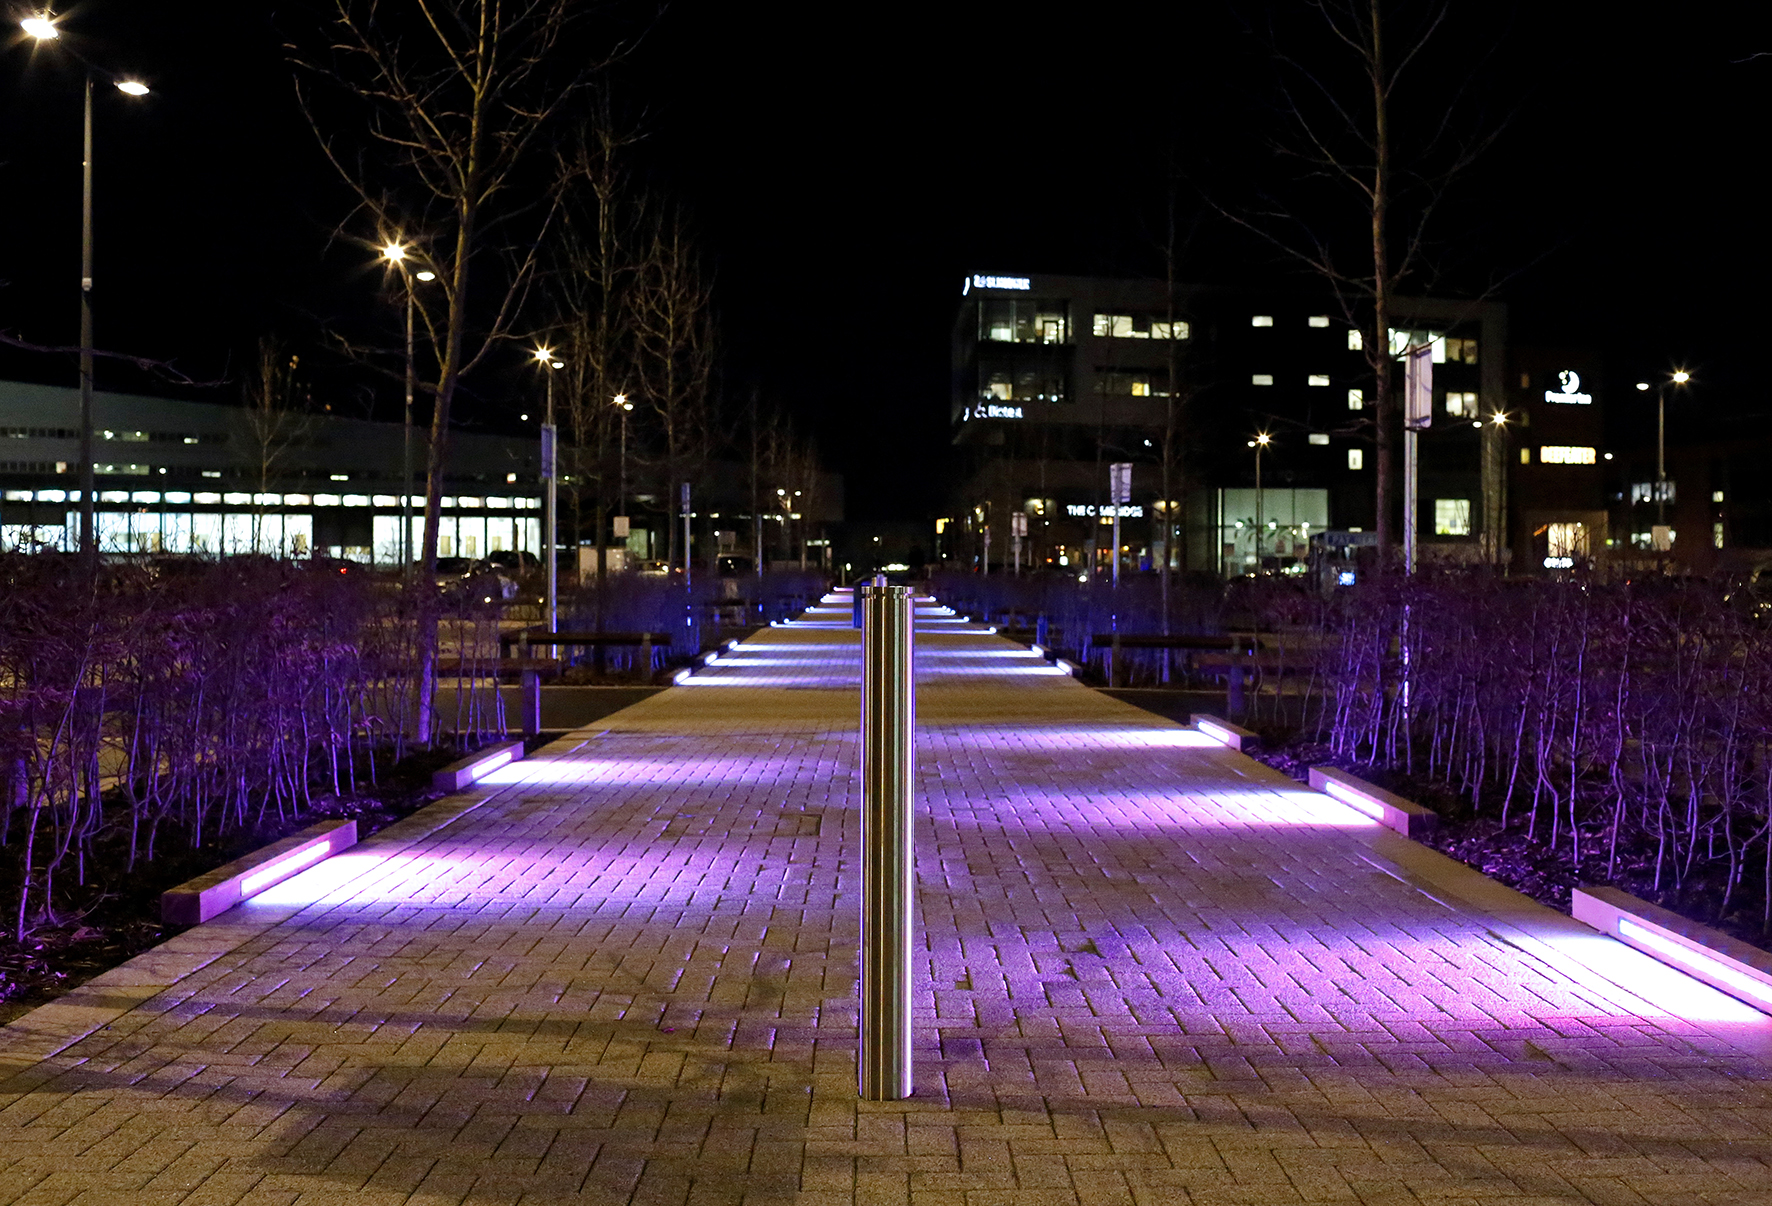 Lighting & Planting Scheme for Longbridge by Cathy Wade, photography by Stephen Burke